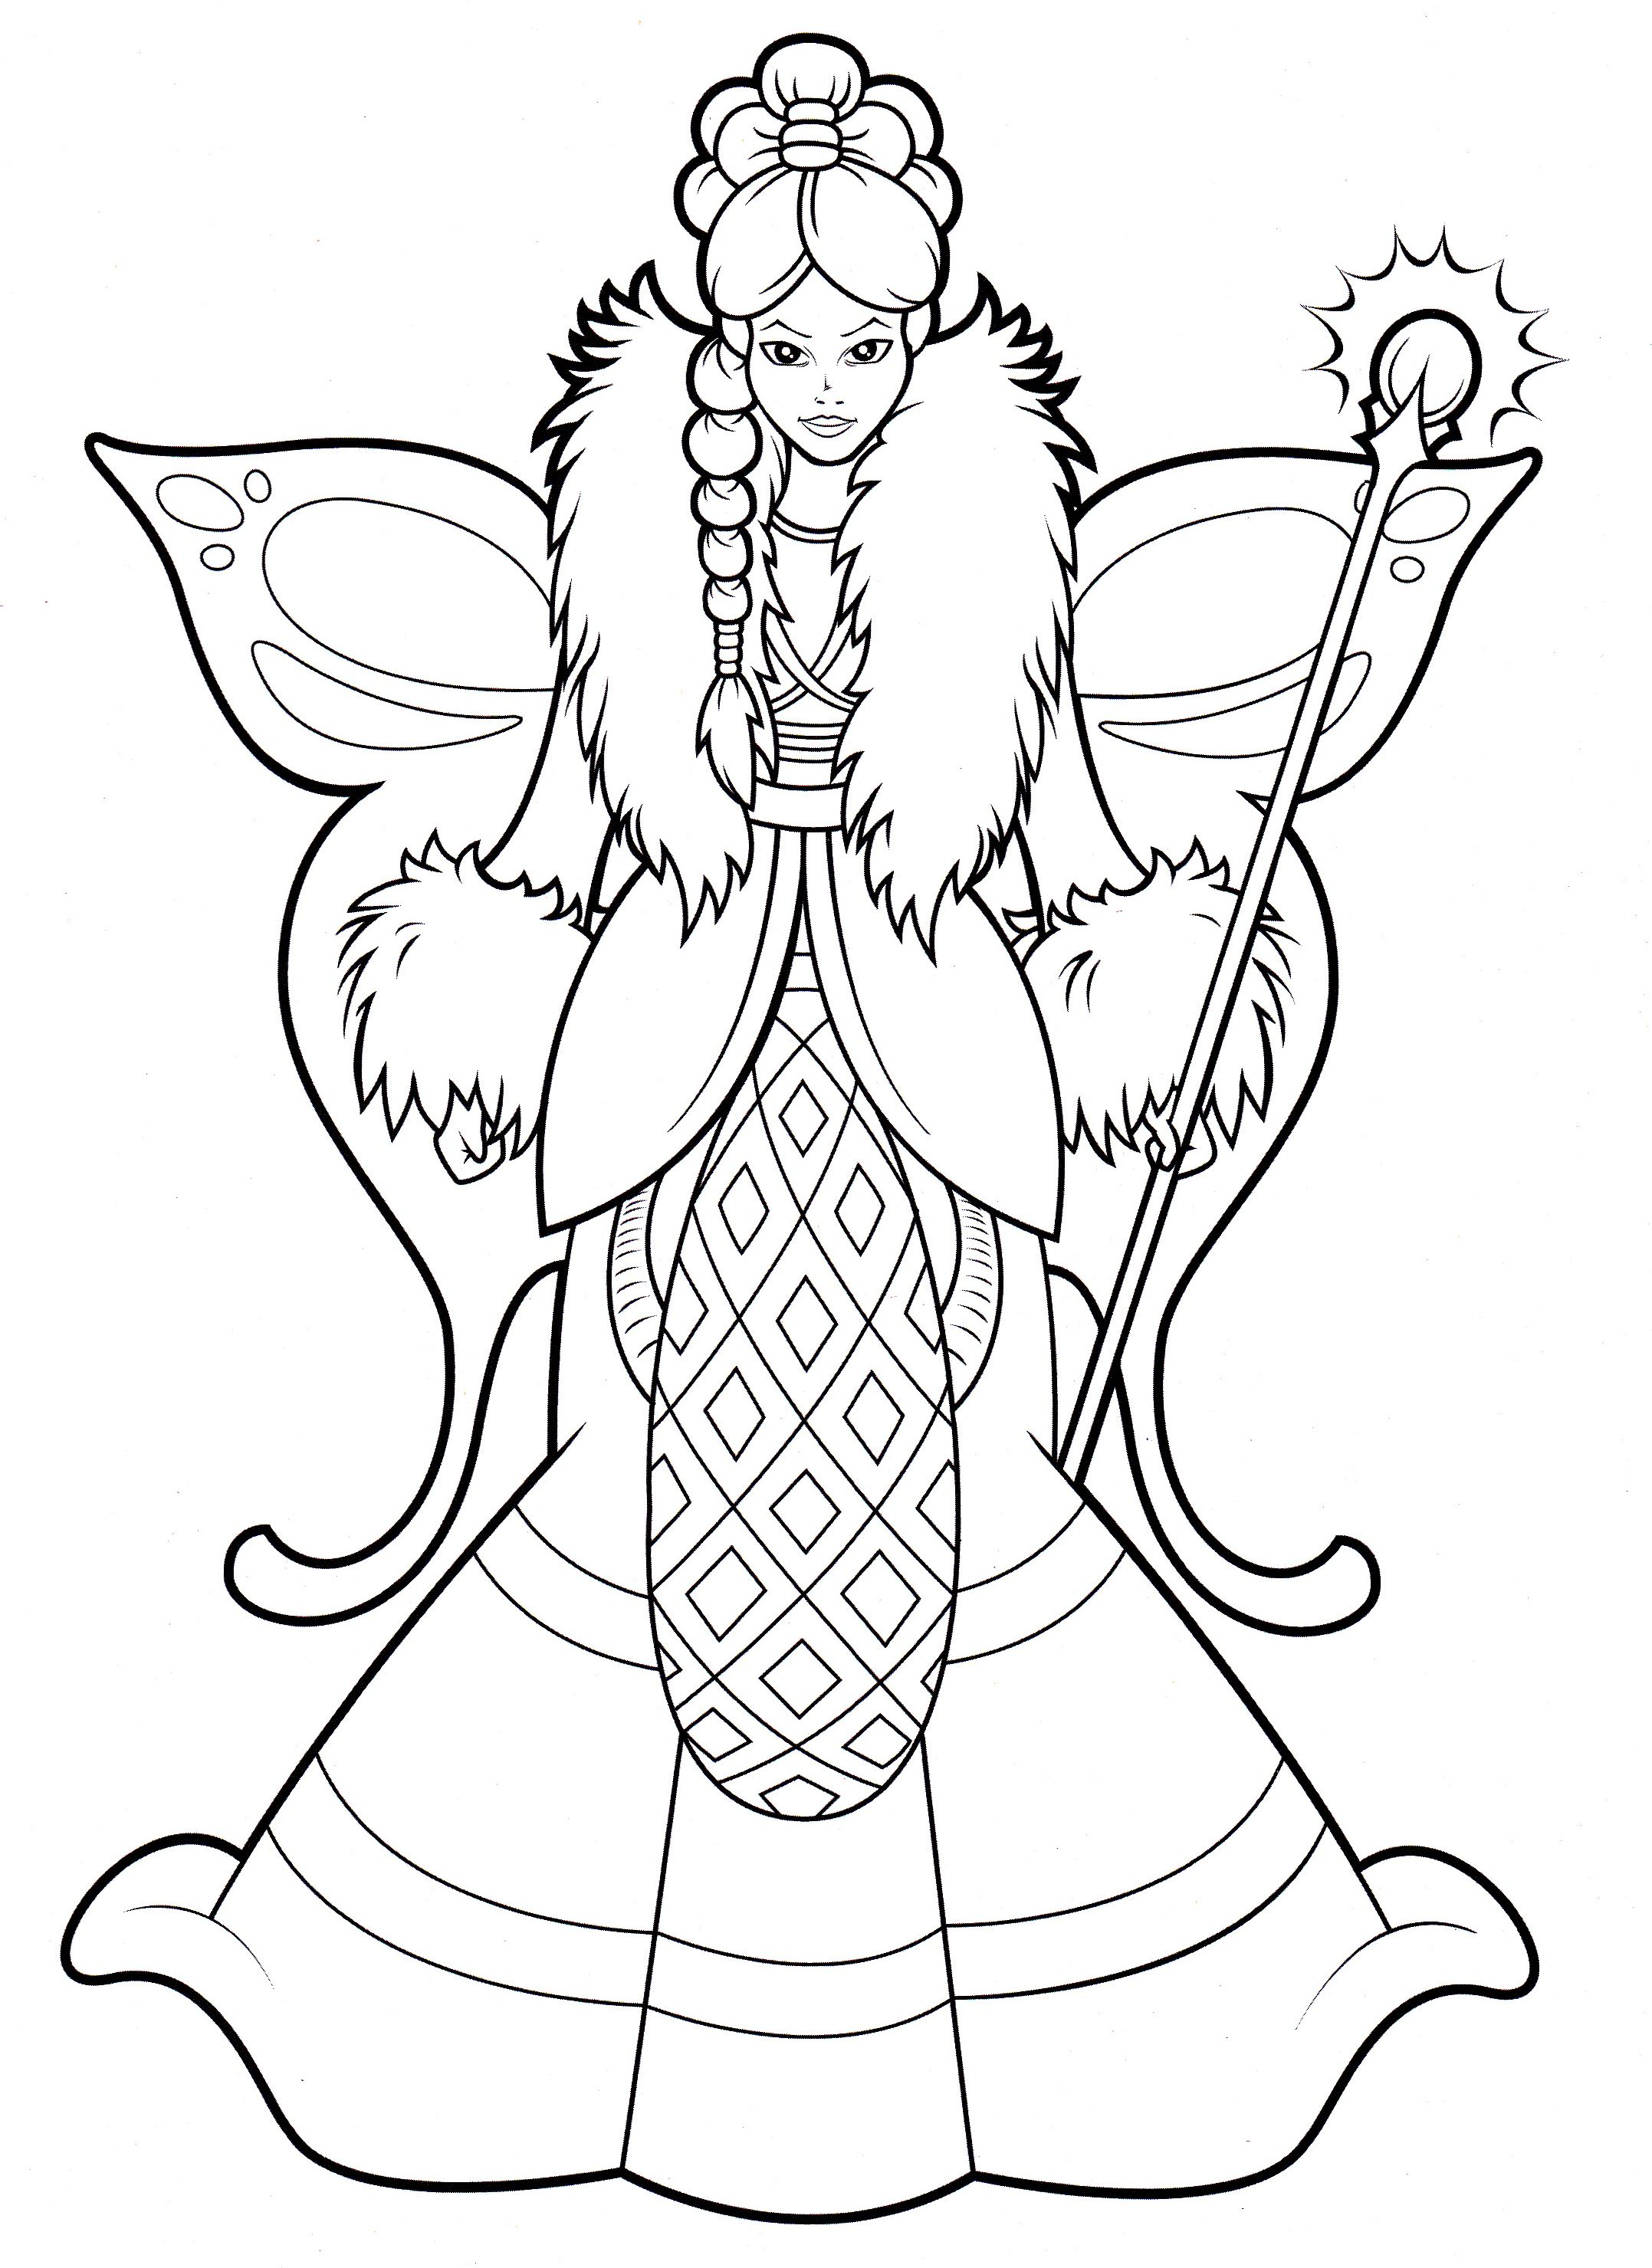 Fairy from Lilly Butterfly coloring book | Coloring pages scanned ...